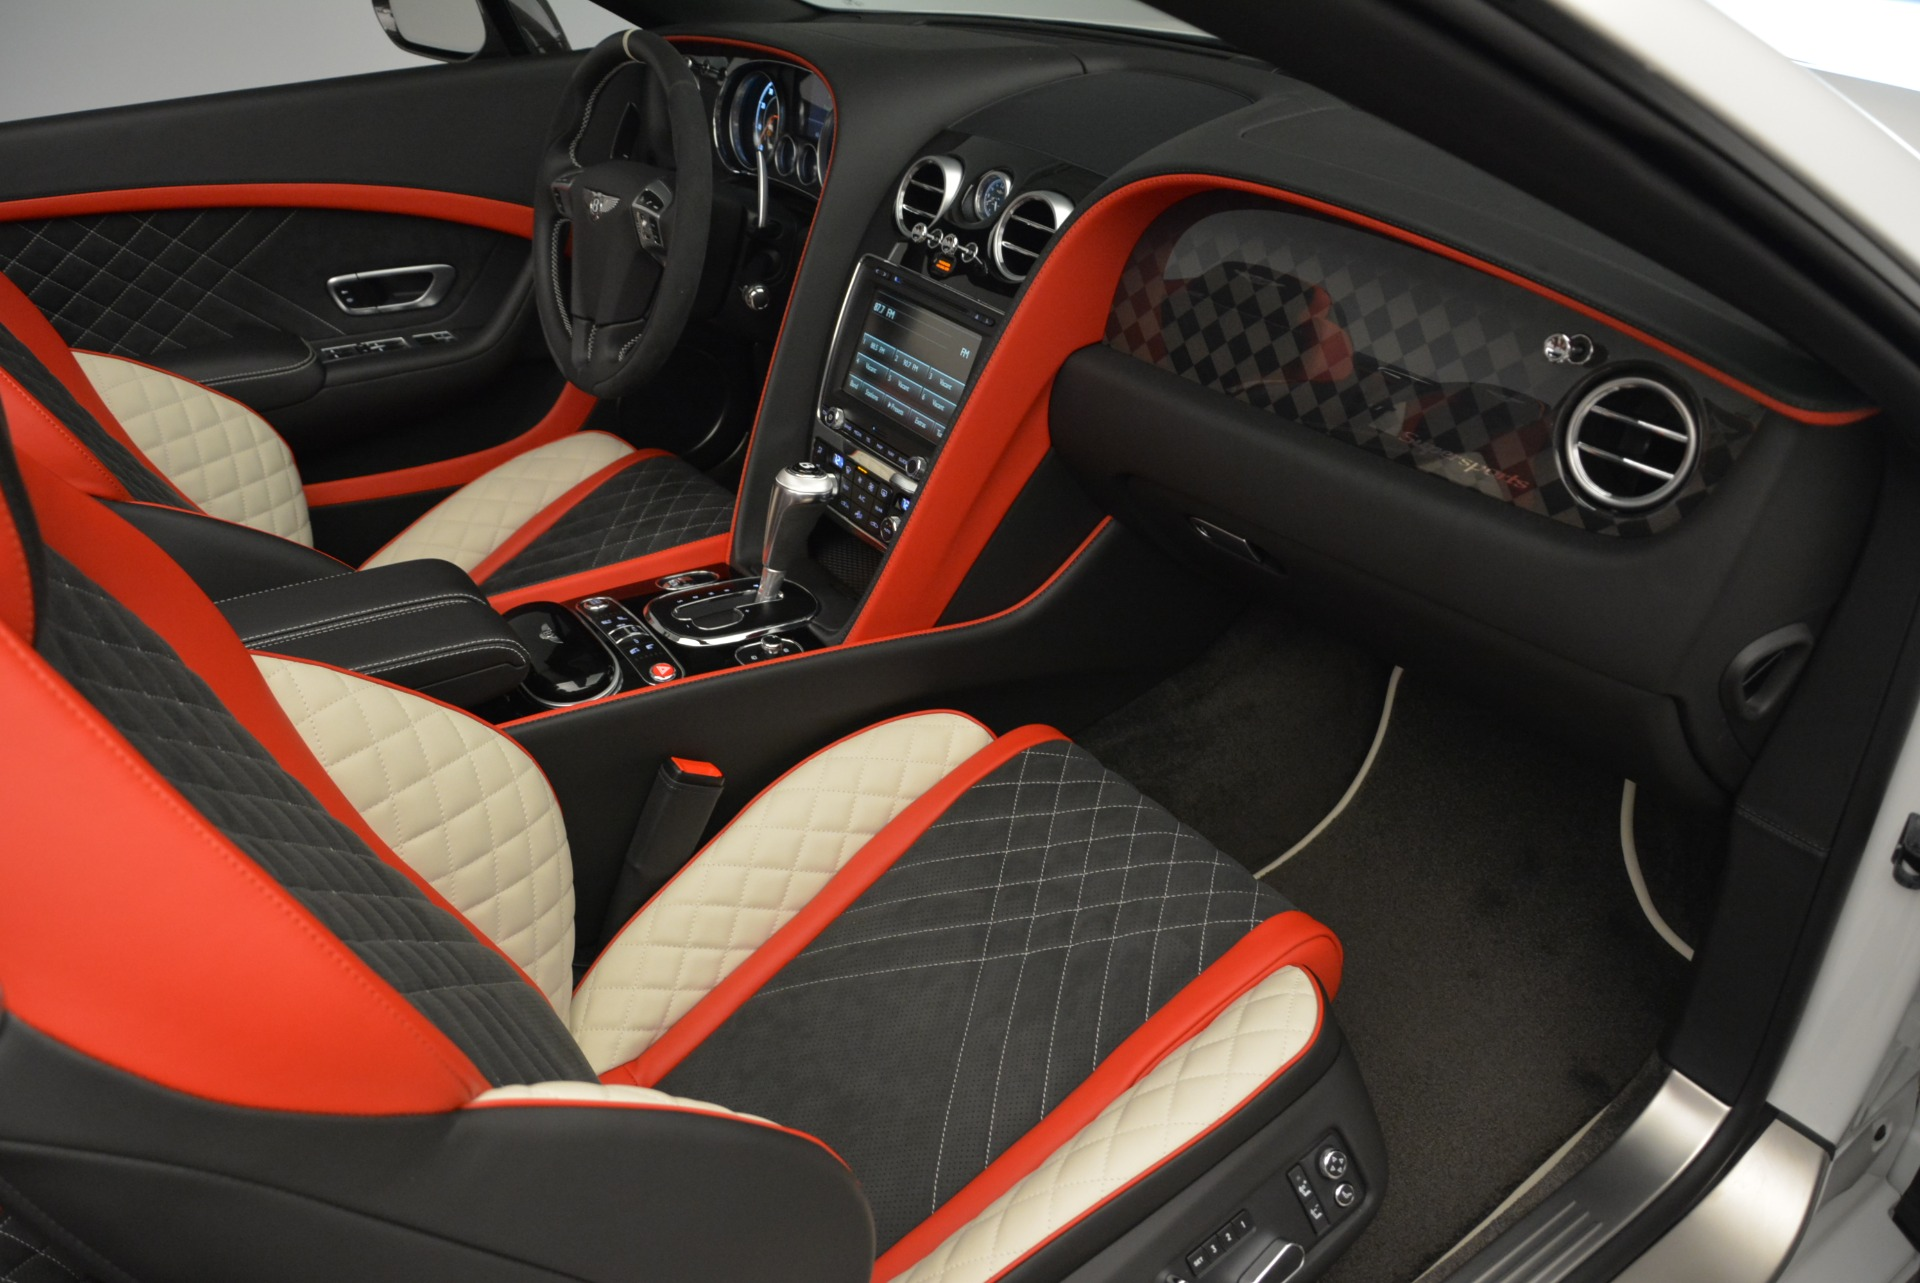 Used 2018 Bentley Continental GT Supersports Convertible For Sale In Westport, CT 1875_p29